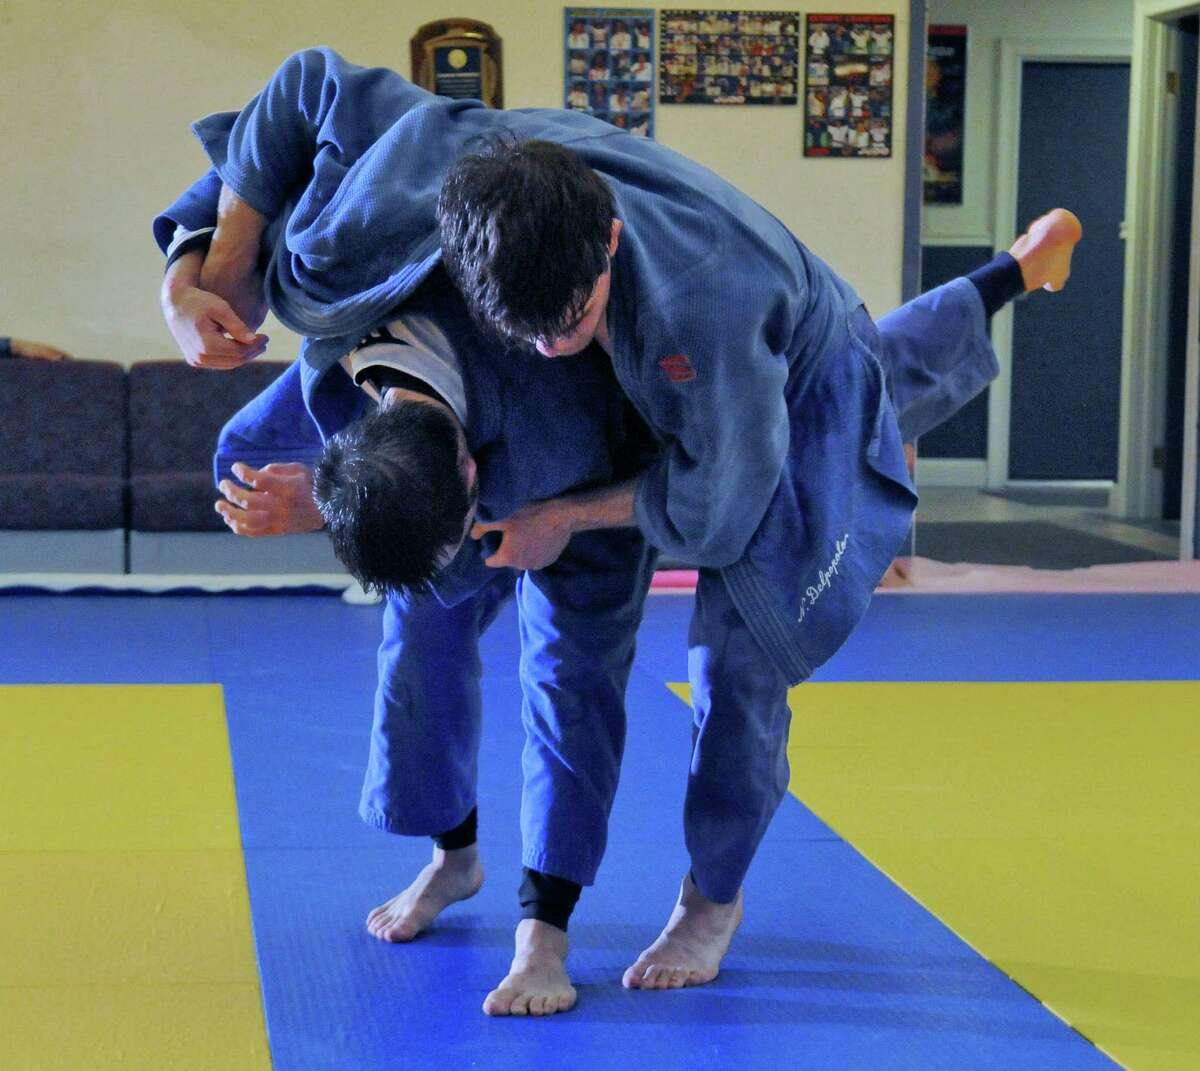 Burnt Hills graduate Nick Delpopolo, right hopes to make the U.S. Olympic team in judo, and has to win a bout on Saturday to qualify. He and Nick Kossor, left, work on tachiwaza, or standing technique, at the Jason Morris Judo Center on Monday night May 7, 2012 in Glenville, NY.(Philip Kamrass / Times Union )